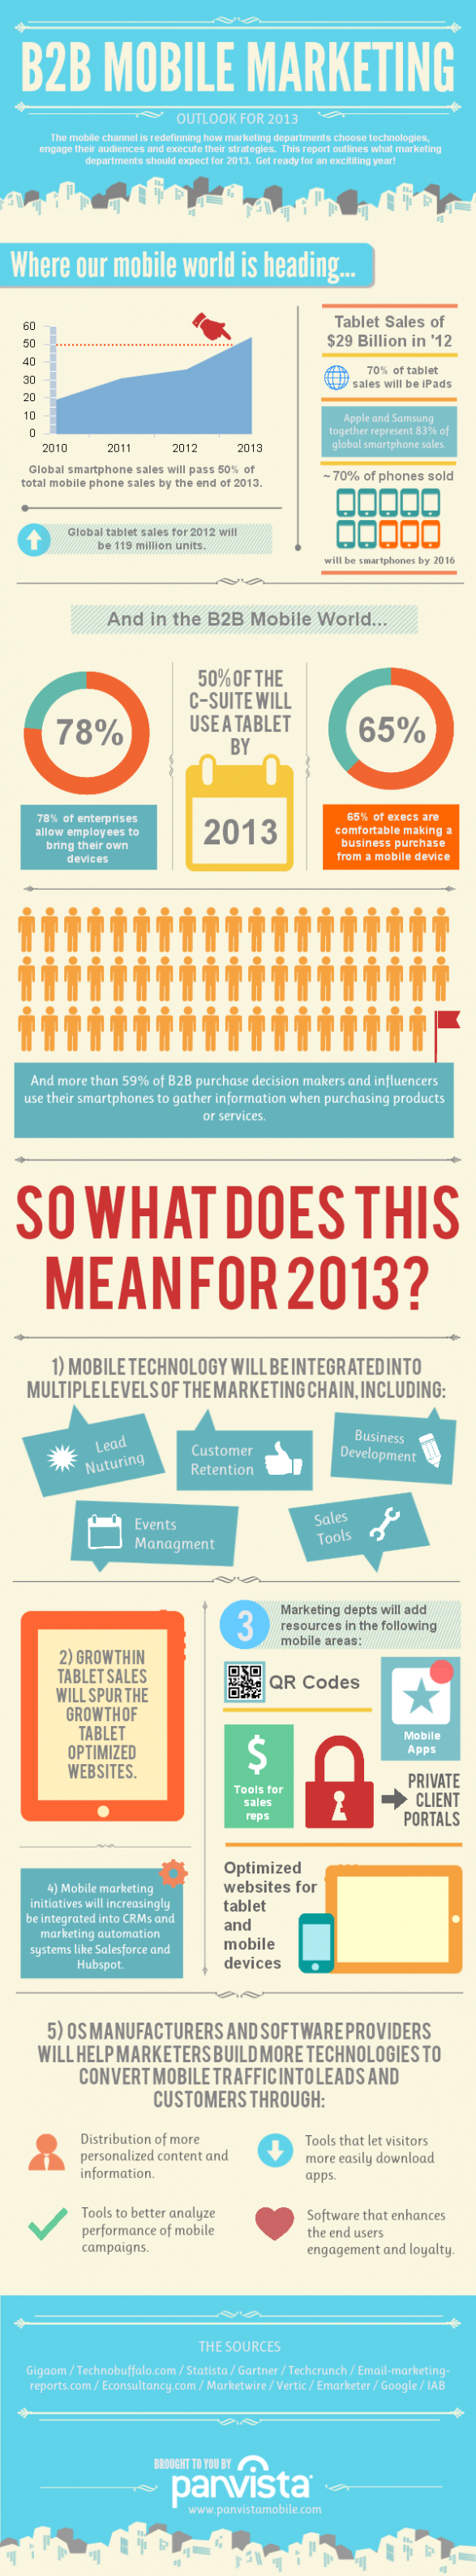 B2B Mobile Marketing for 2013